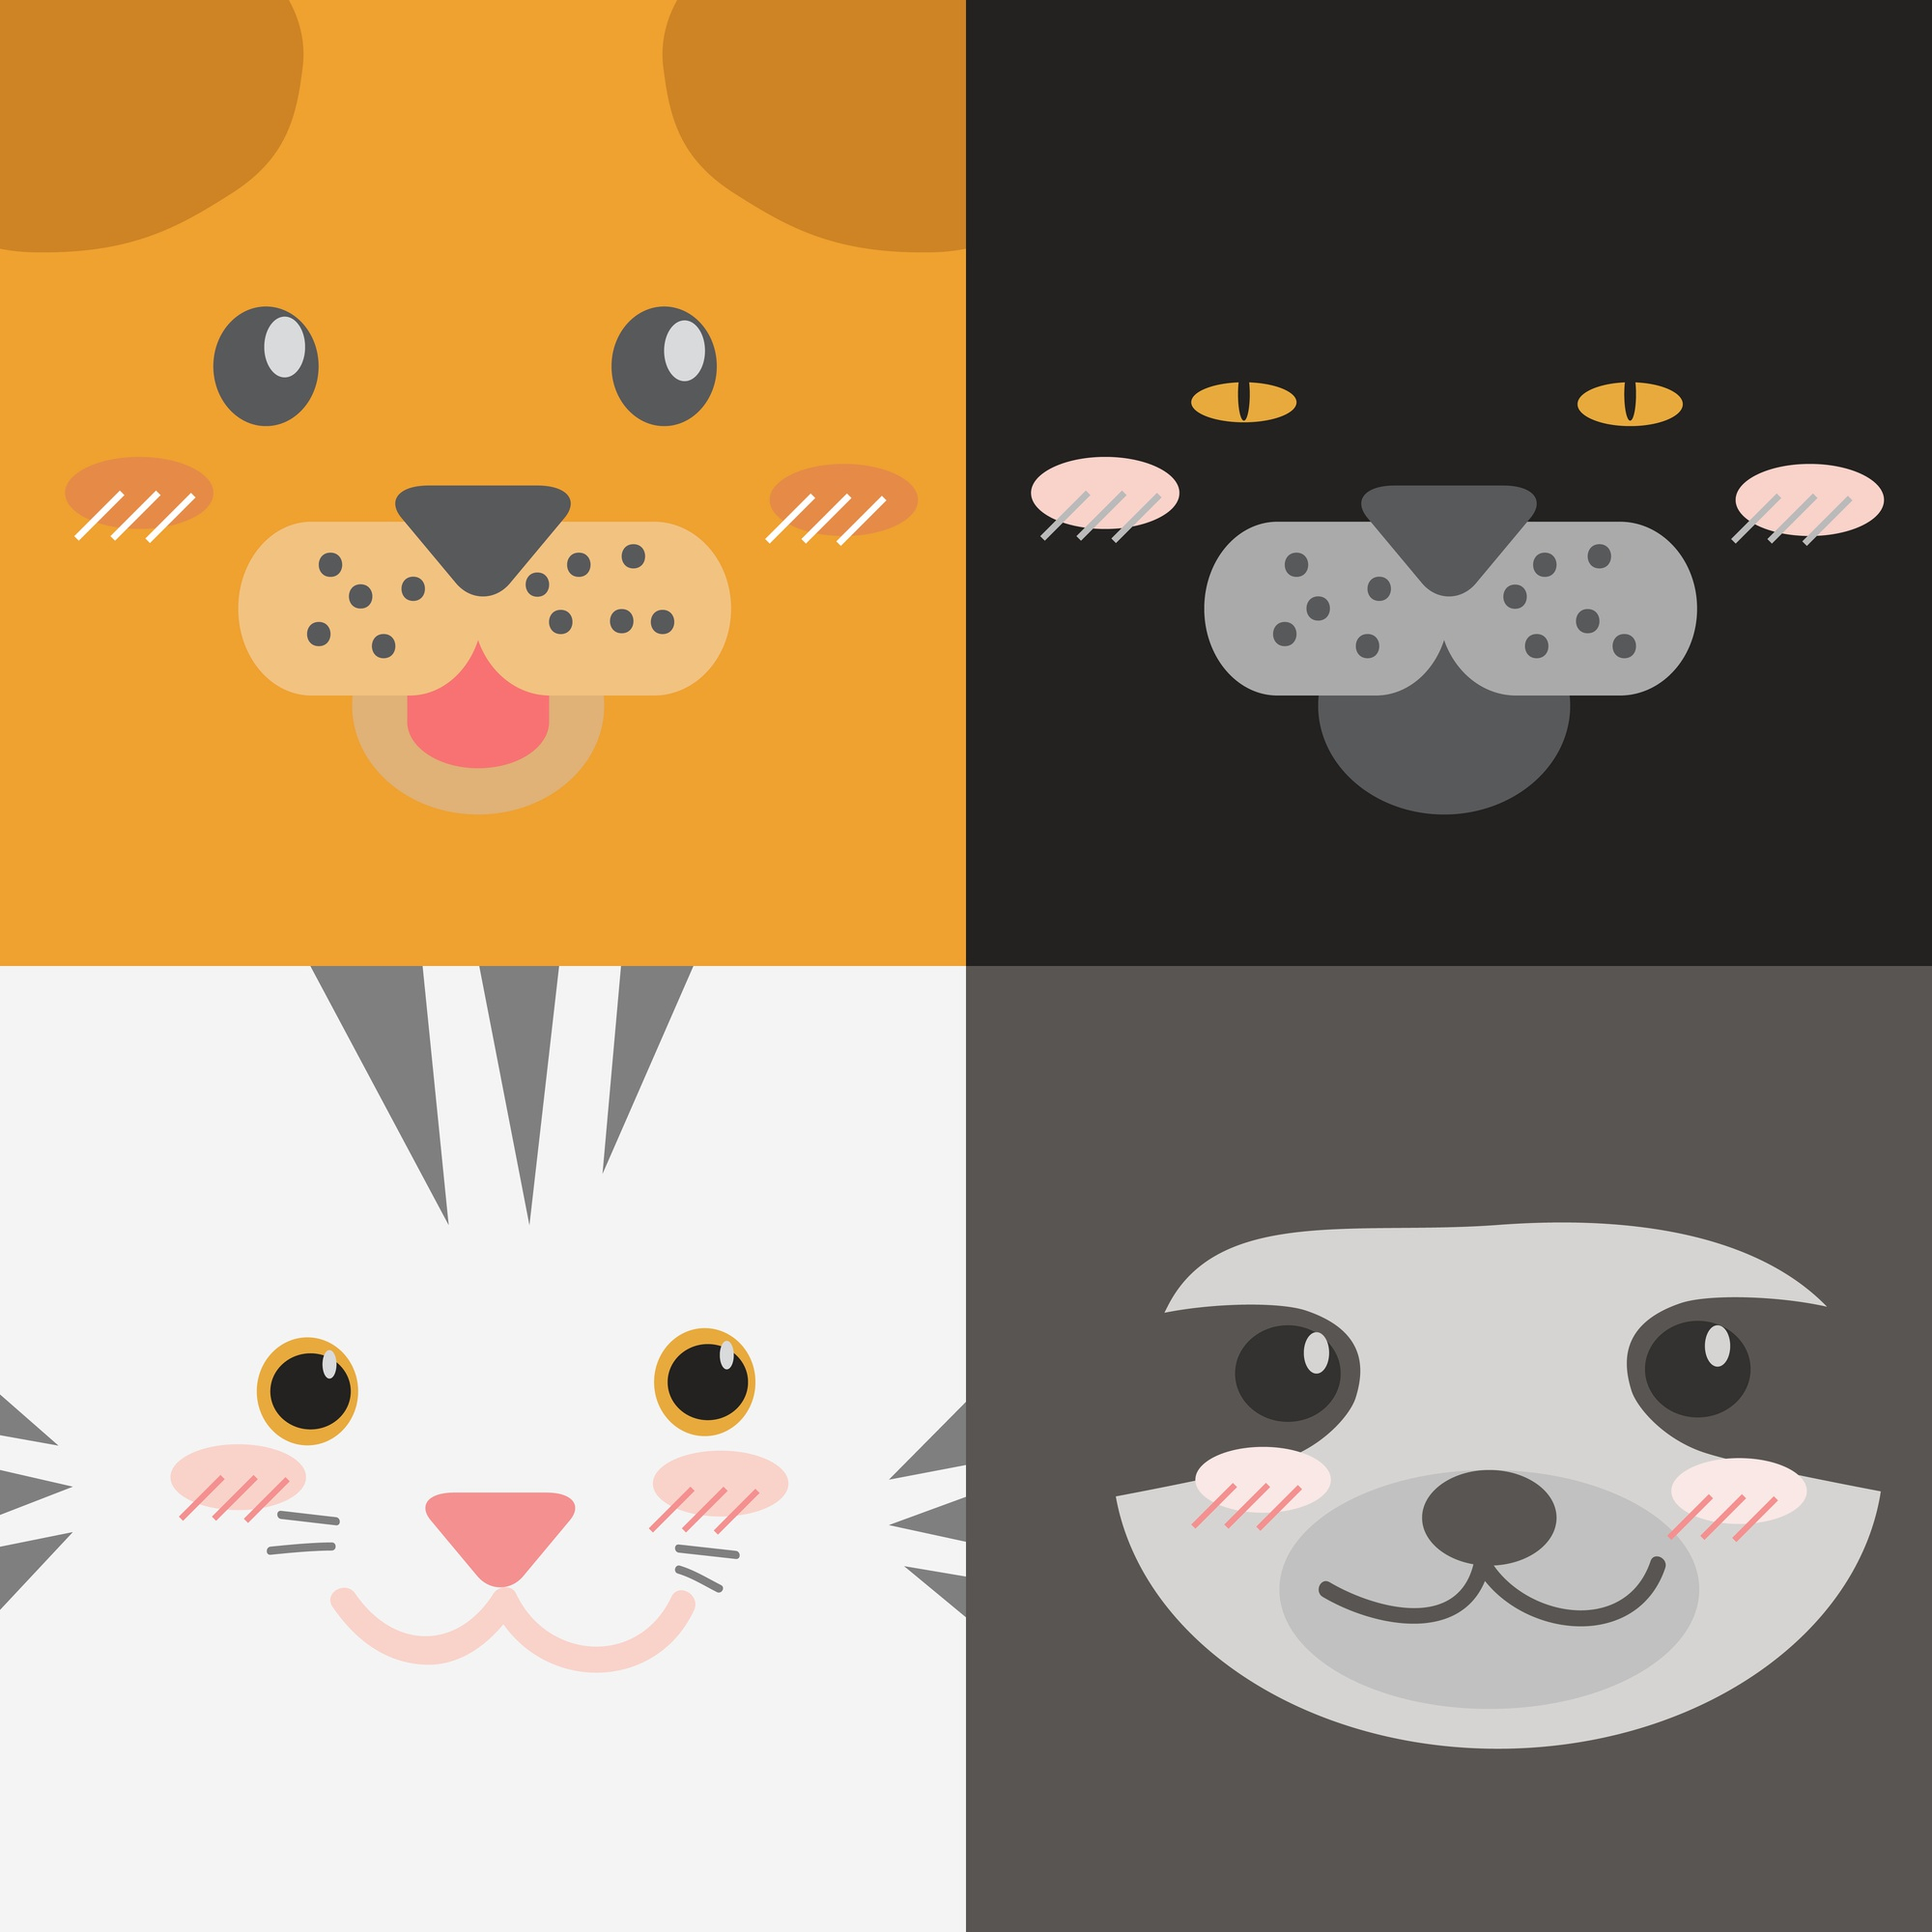 Cute cartoon animals faces collection square design style wallpaper